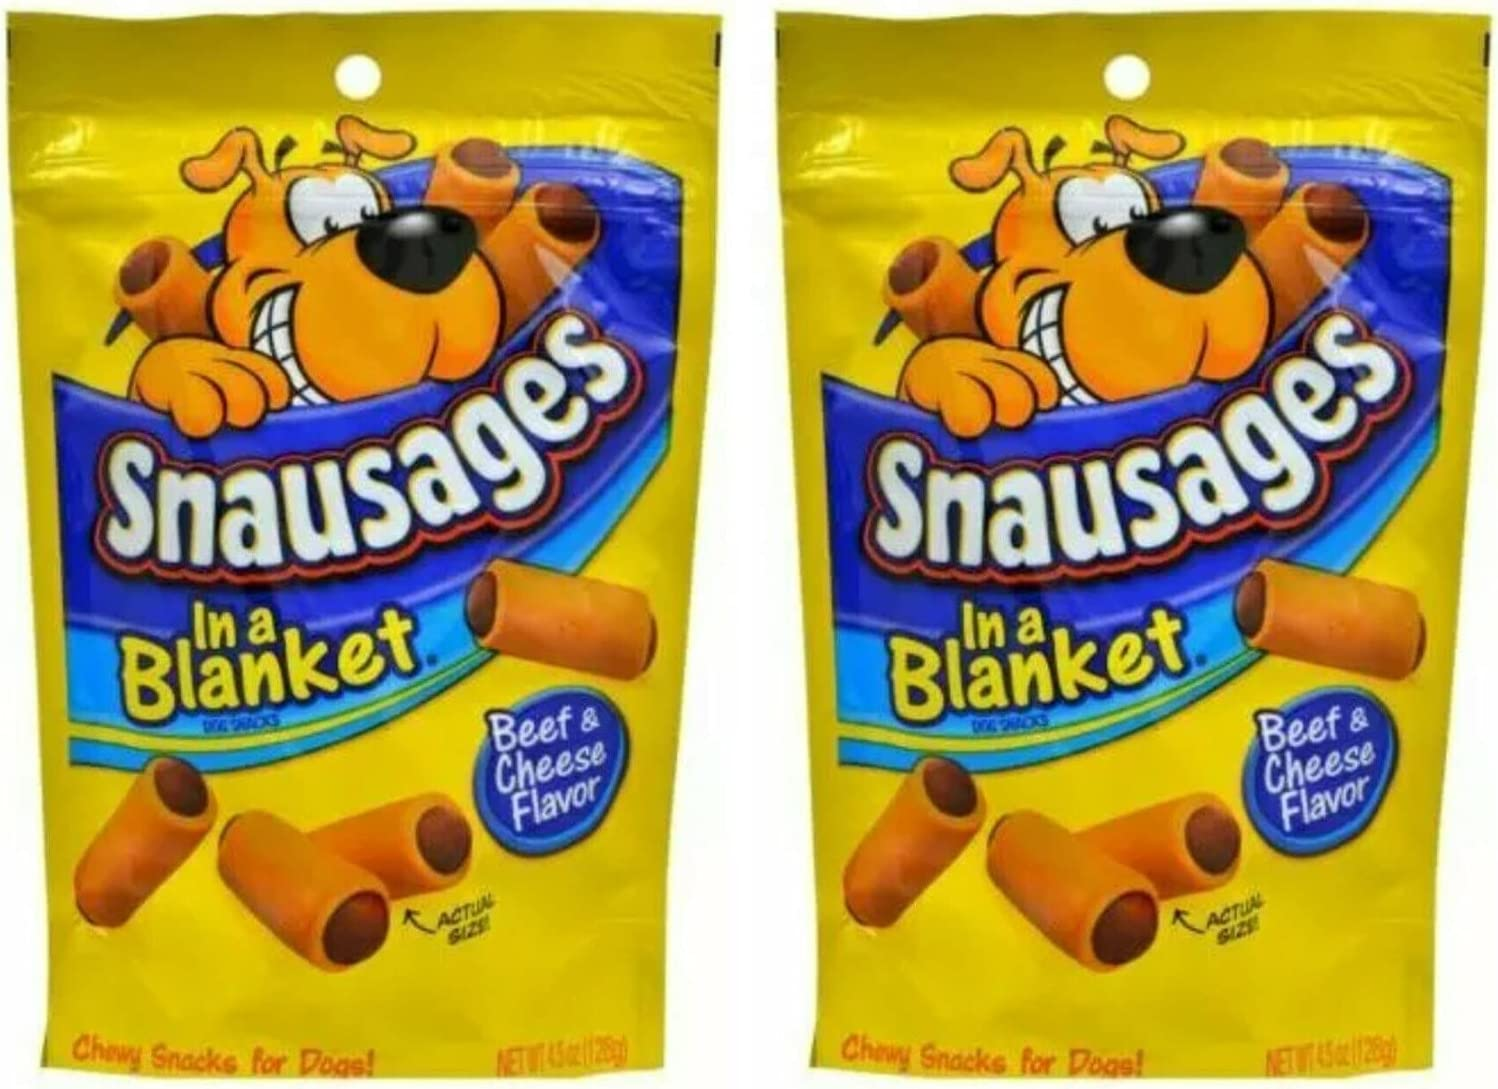 wholesale Snausages Dog Snacks - Ranking TOP15 Beef Cheese 4.5 Net Flavor 128 oz Wt